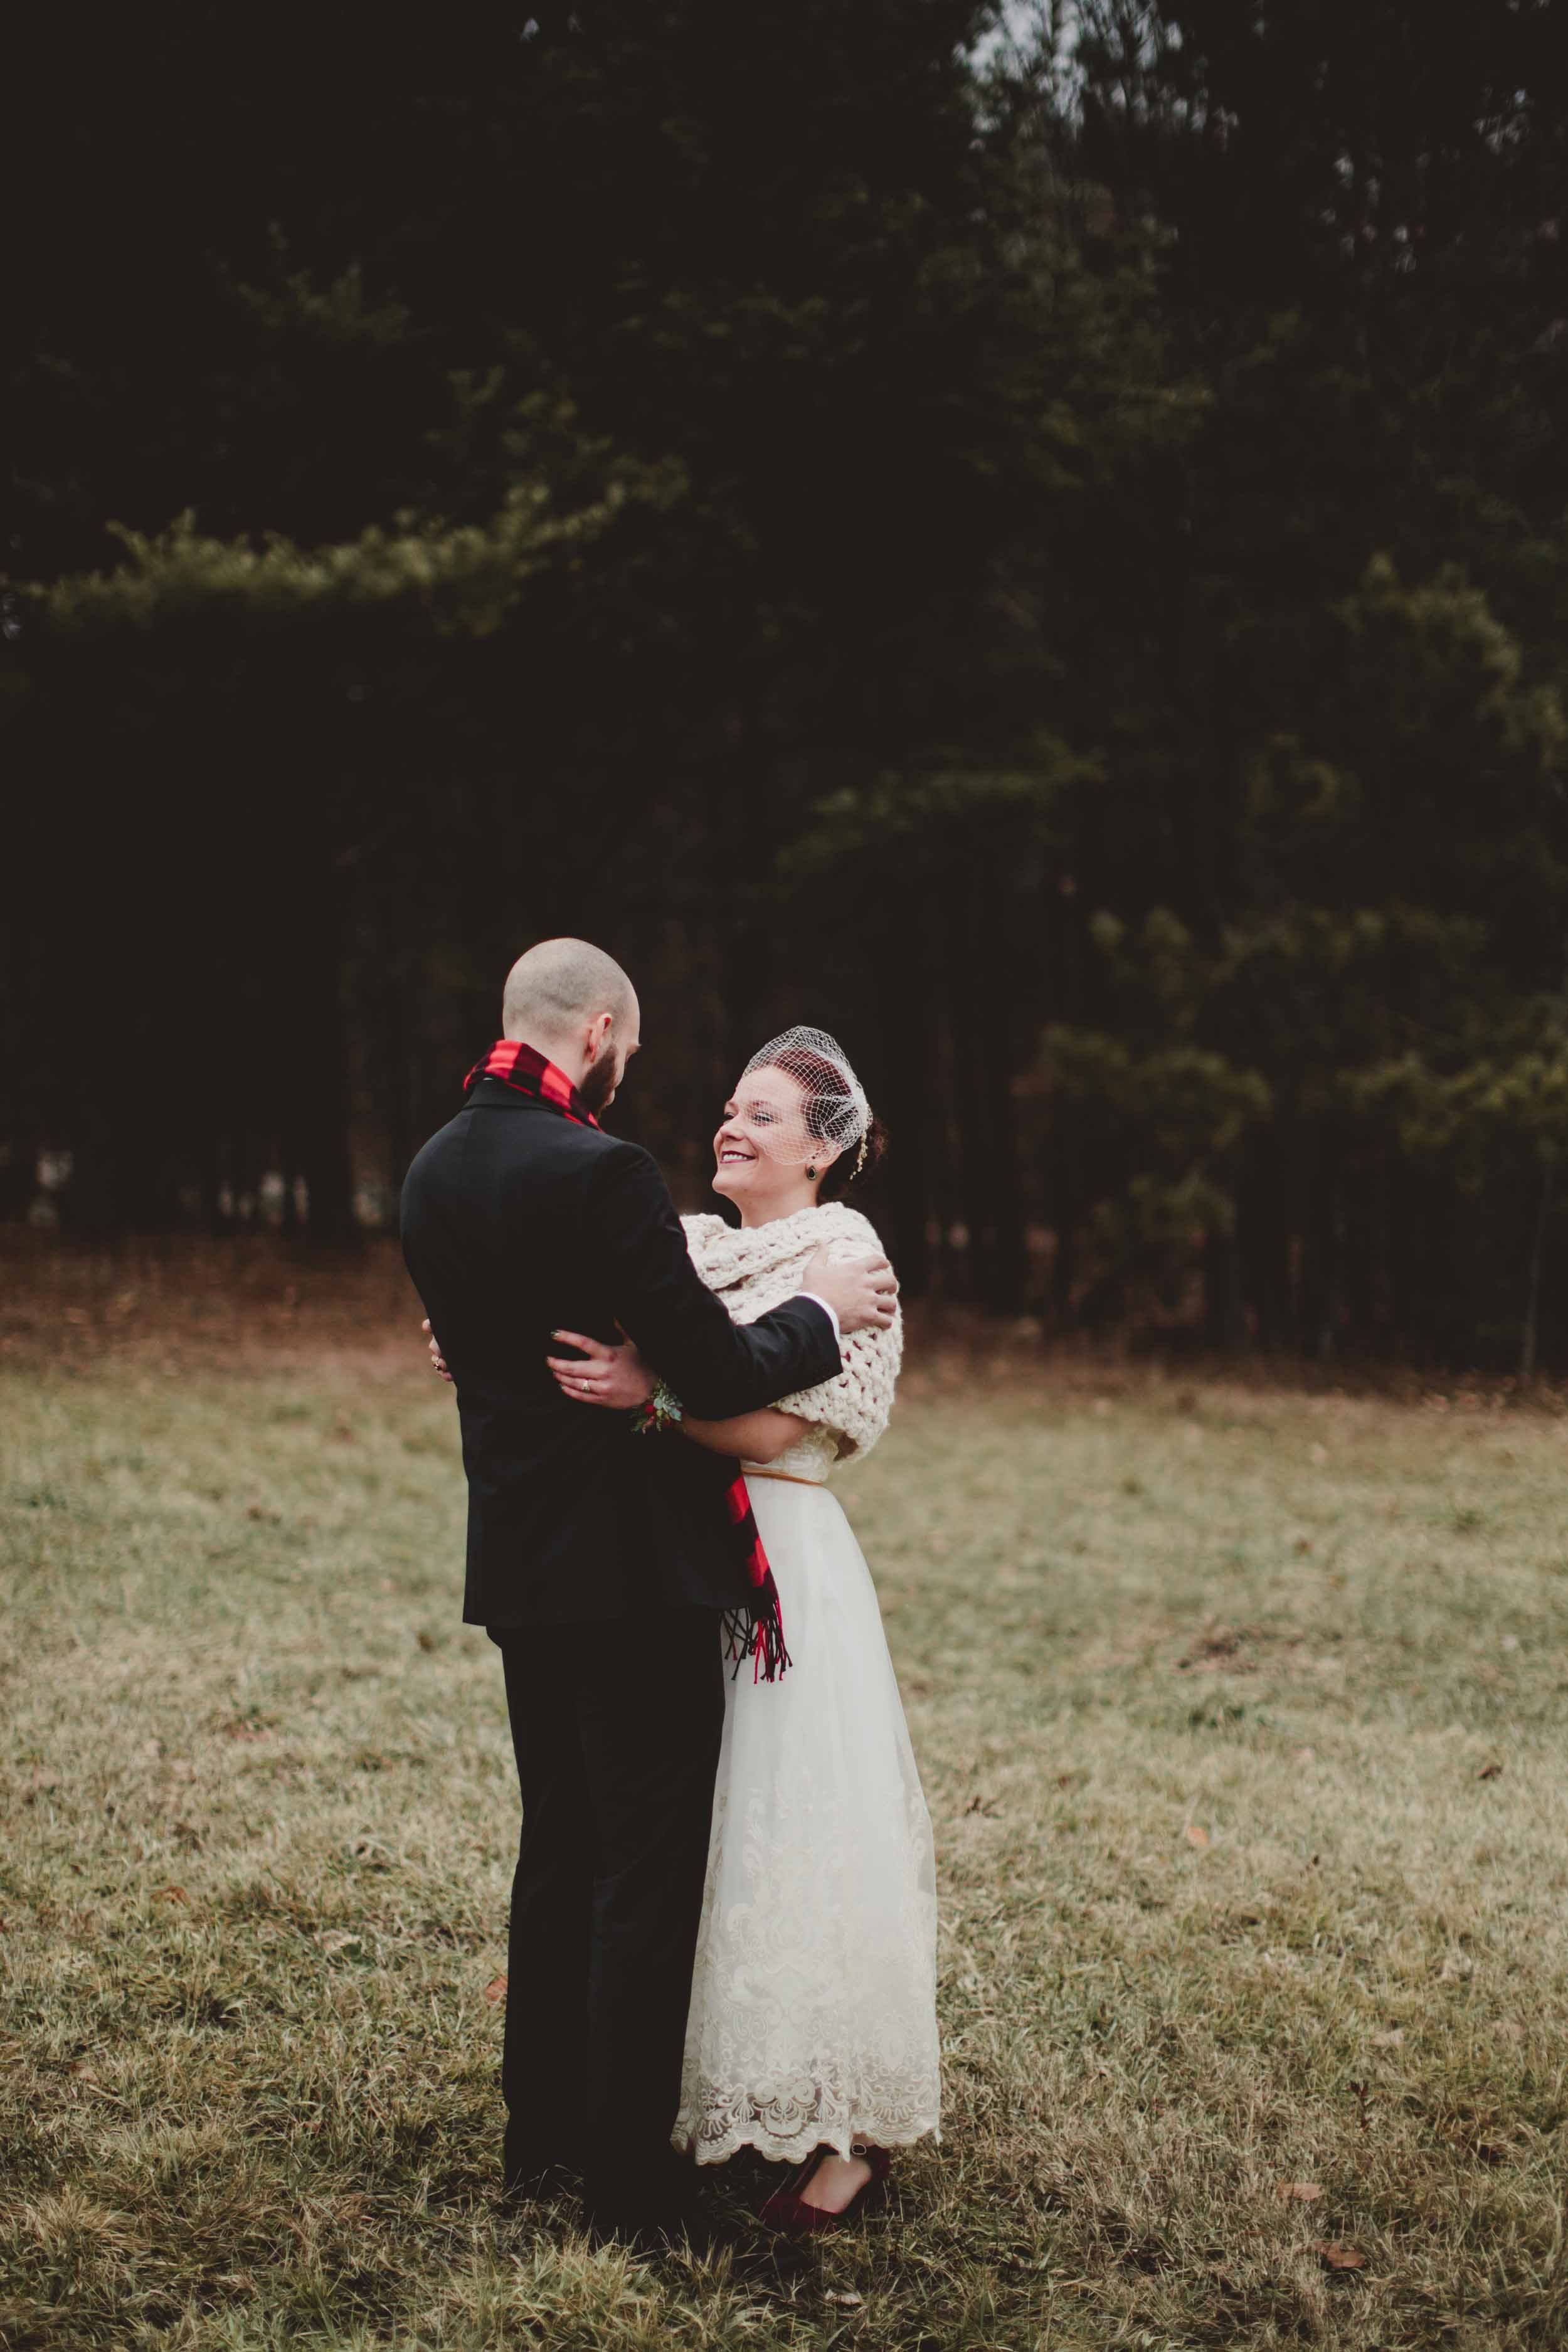 Stone-mountain-arts-wedding94.jpg